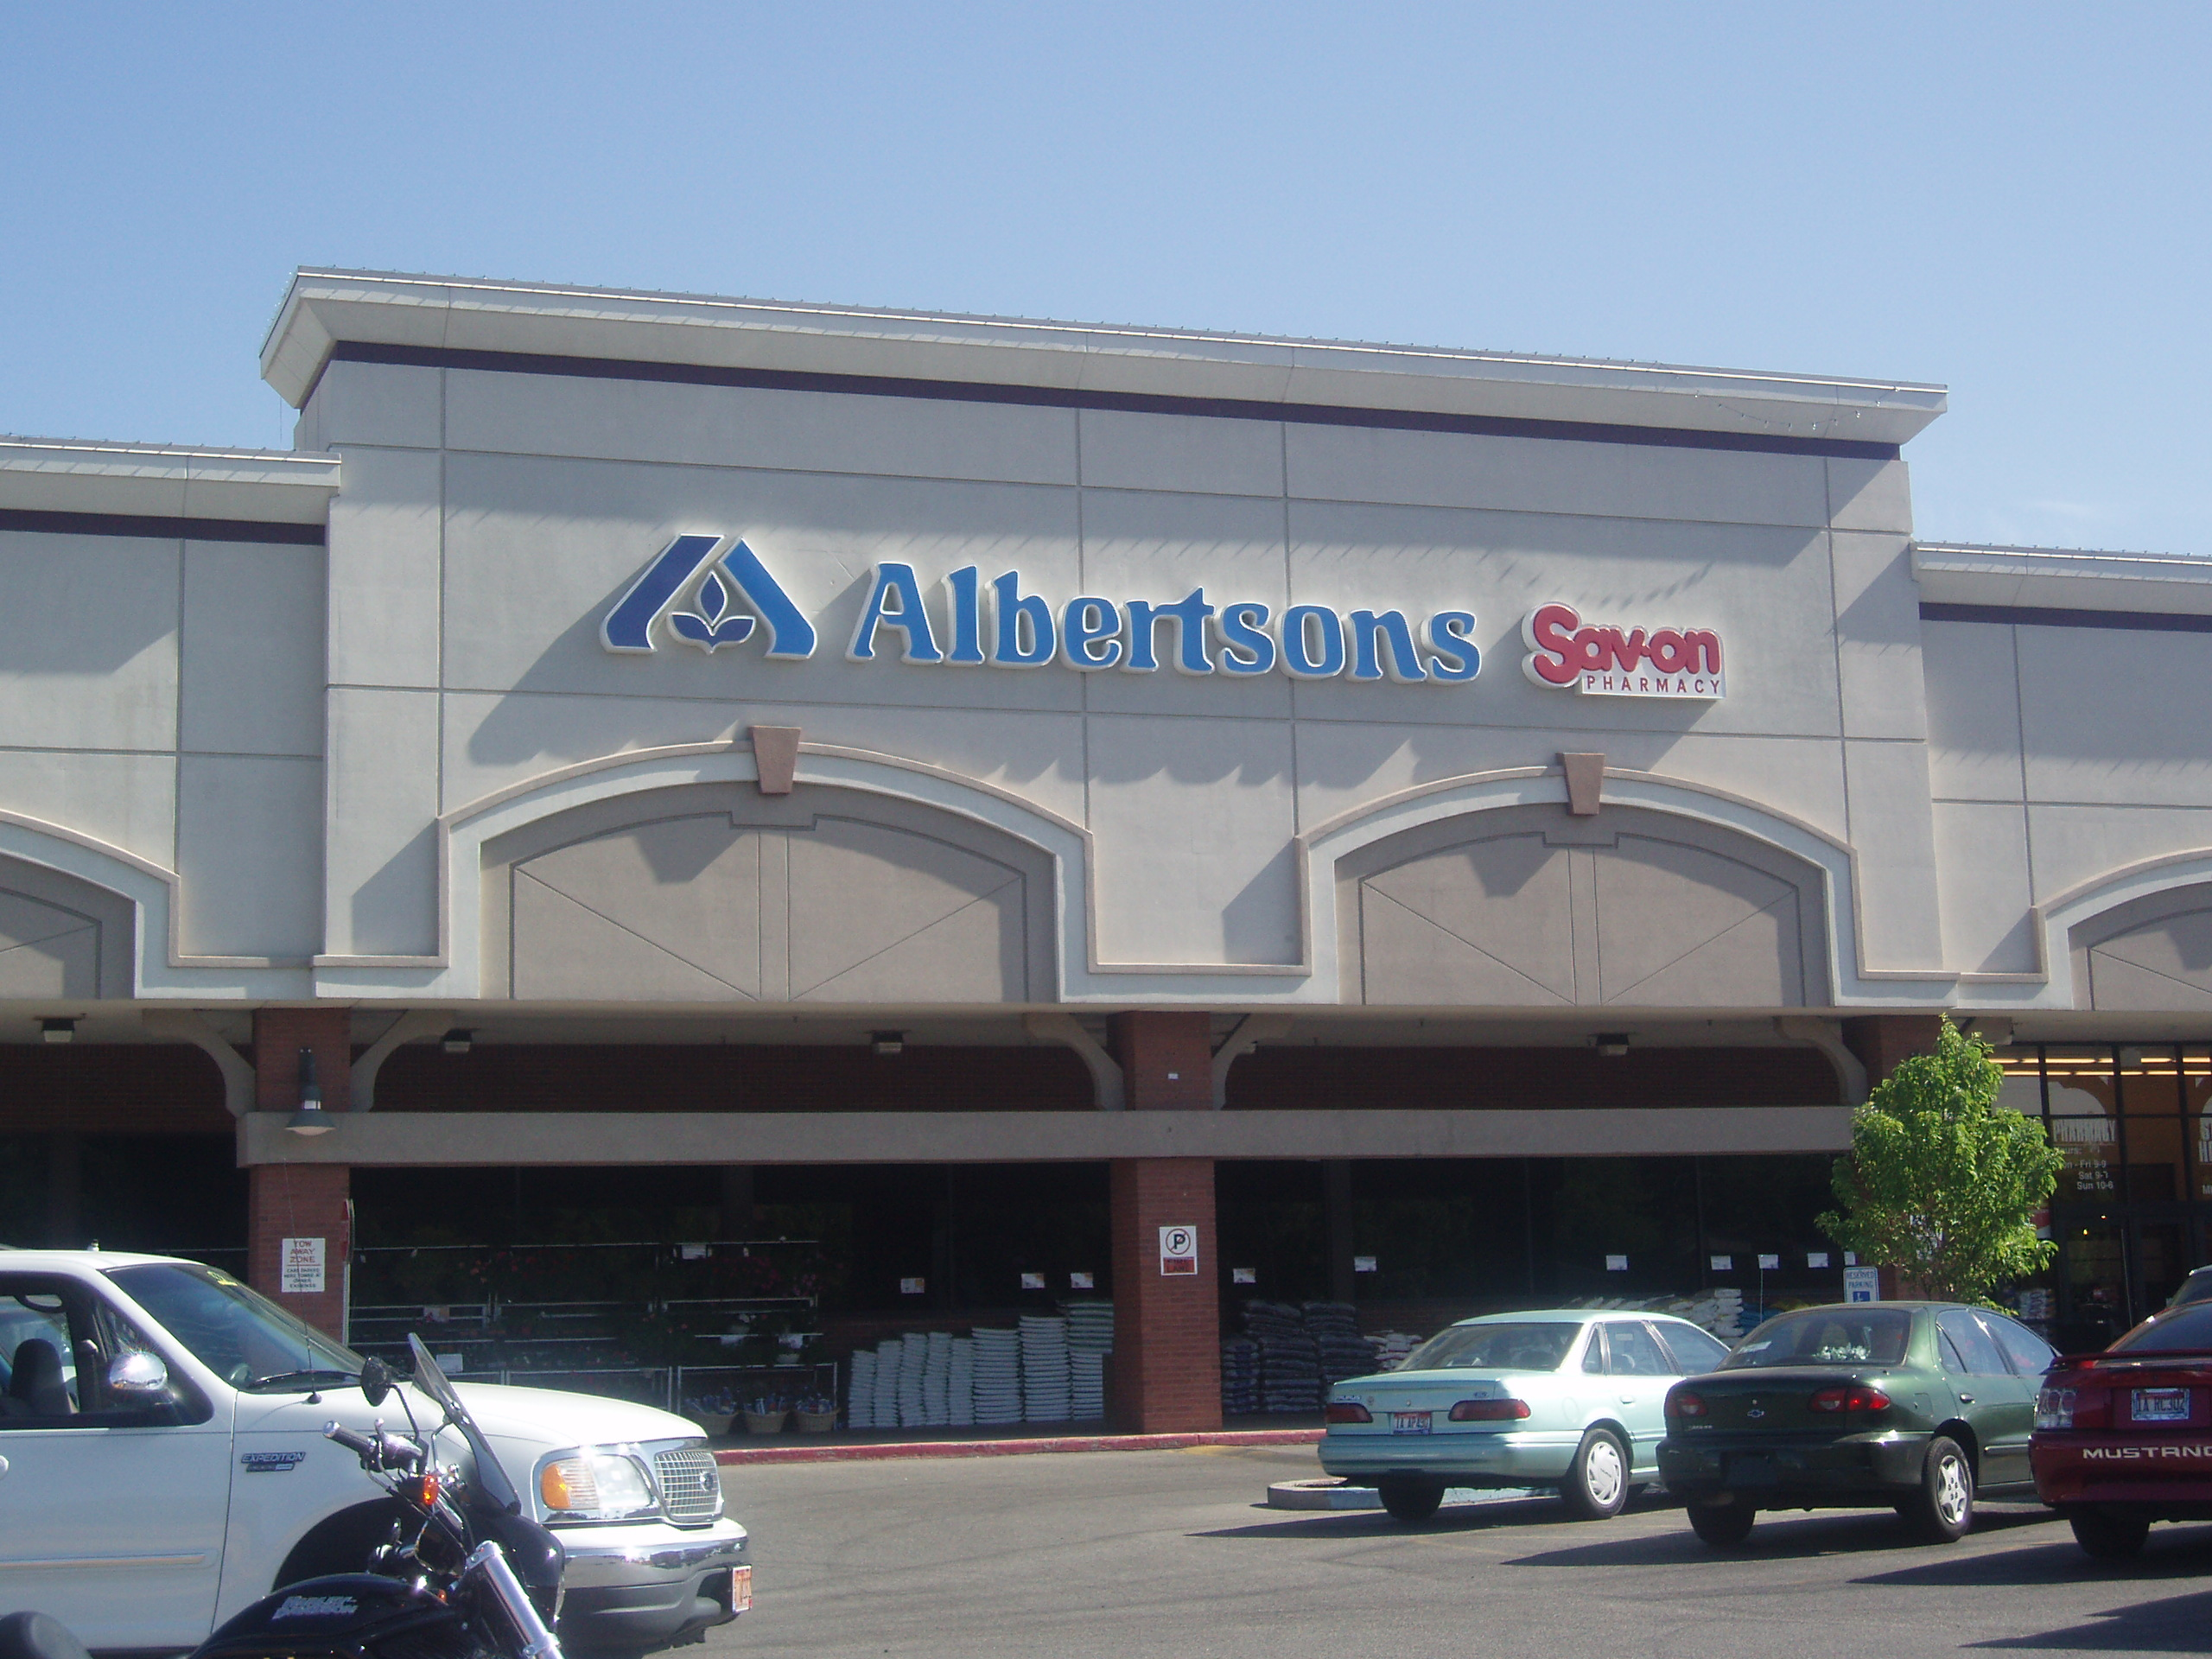 California store faces lawsuit over no-Spanish language policy